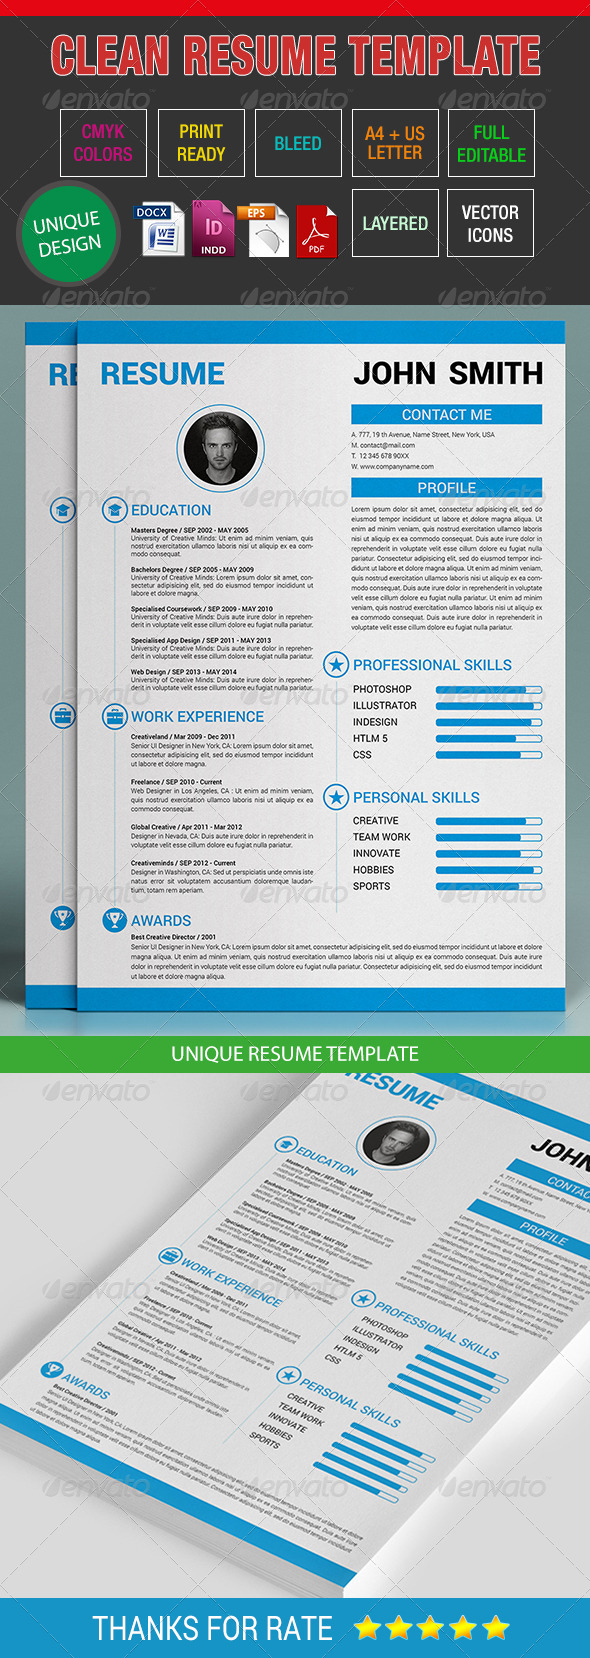 GraphicRiver Clean Resume Template 08 7502089